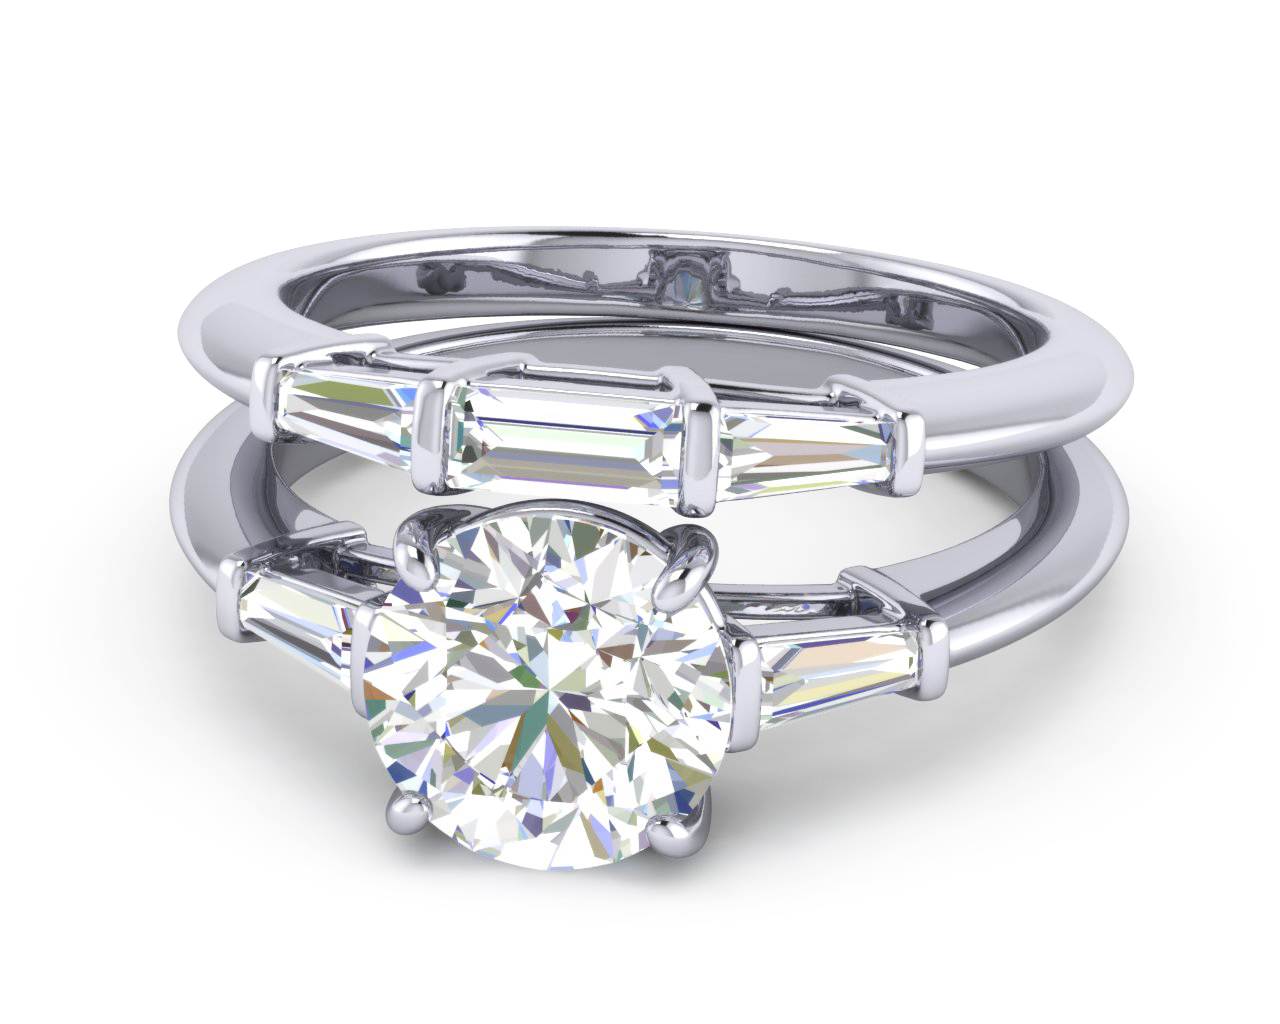 gold platinum ring set and products love elvish palladium white jens hansen wedding in